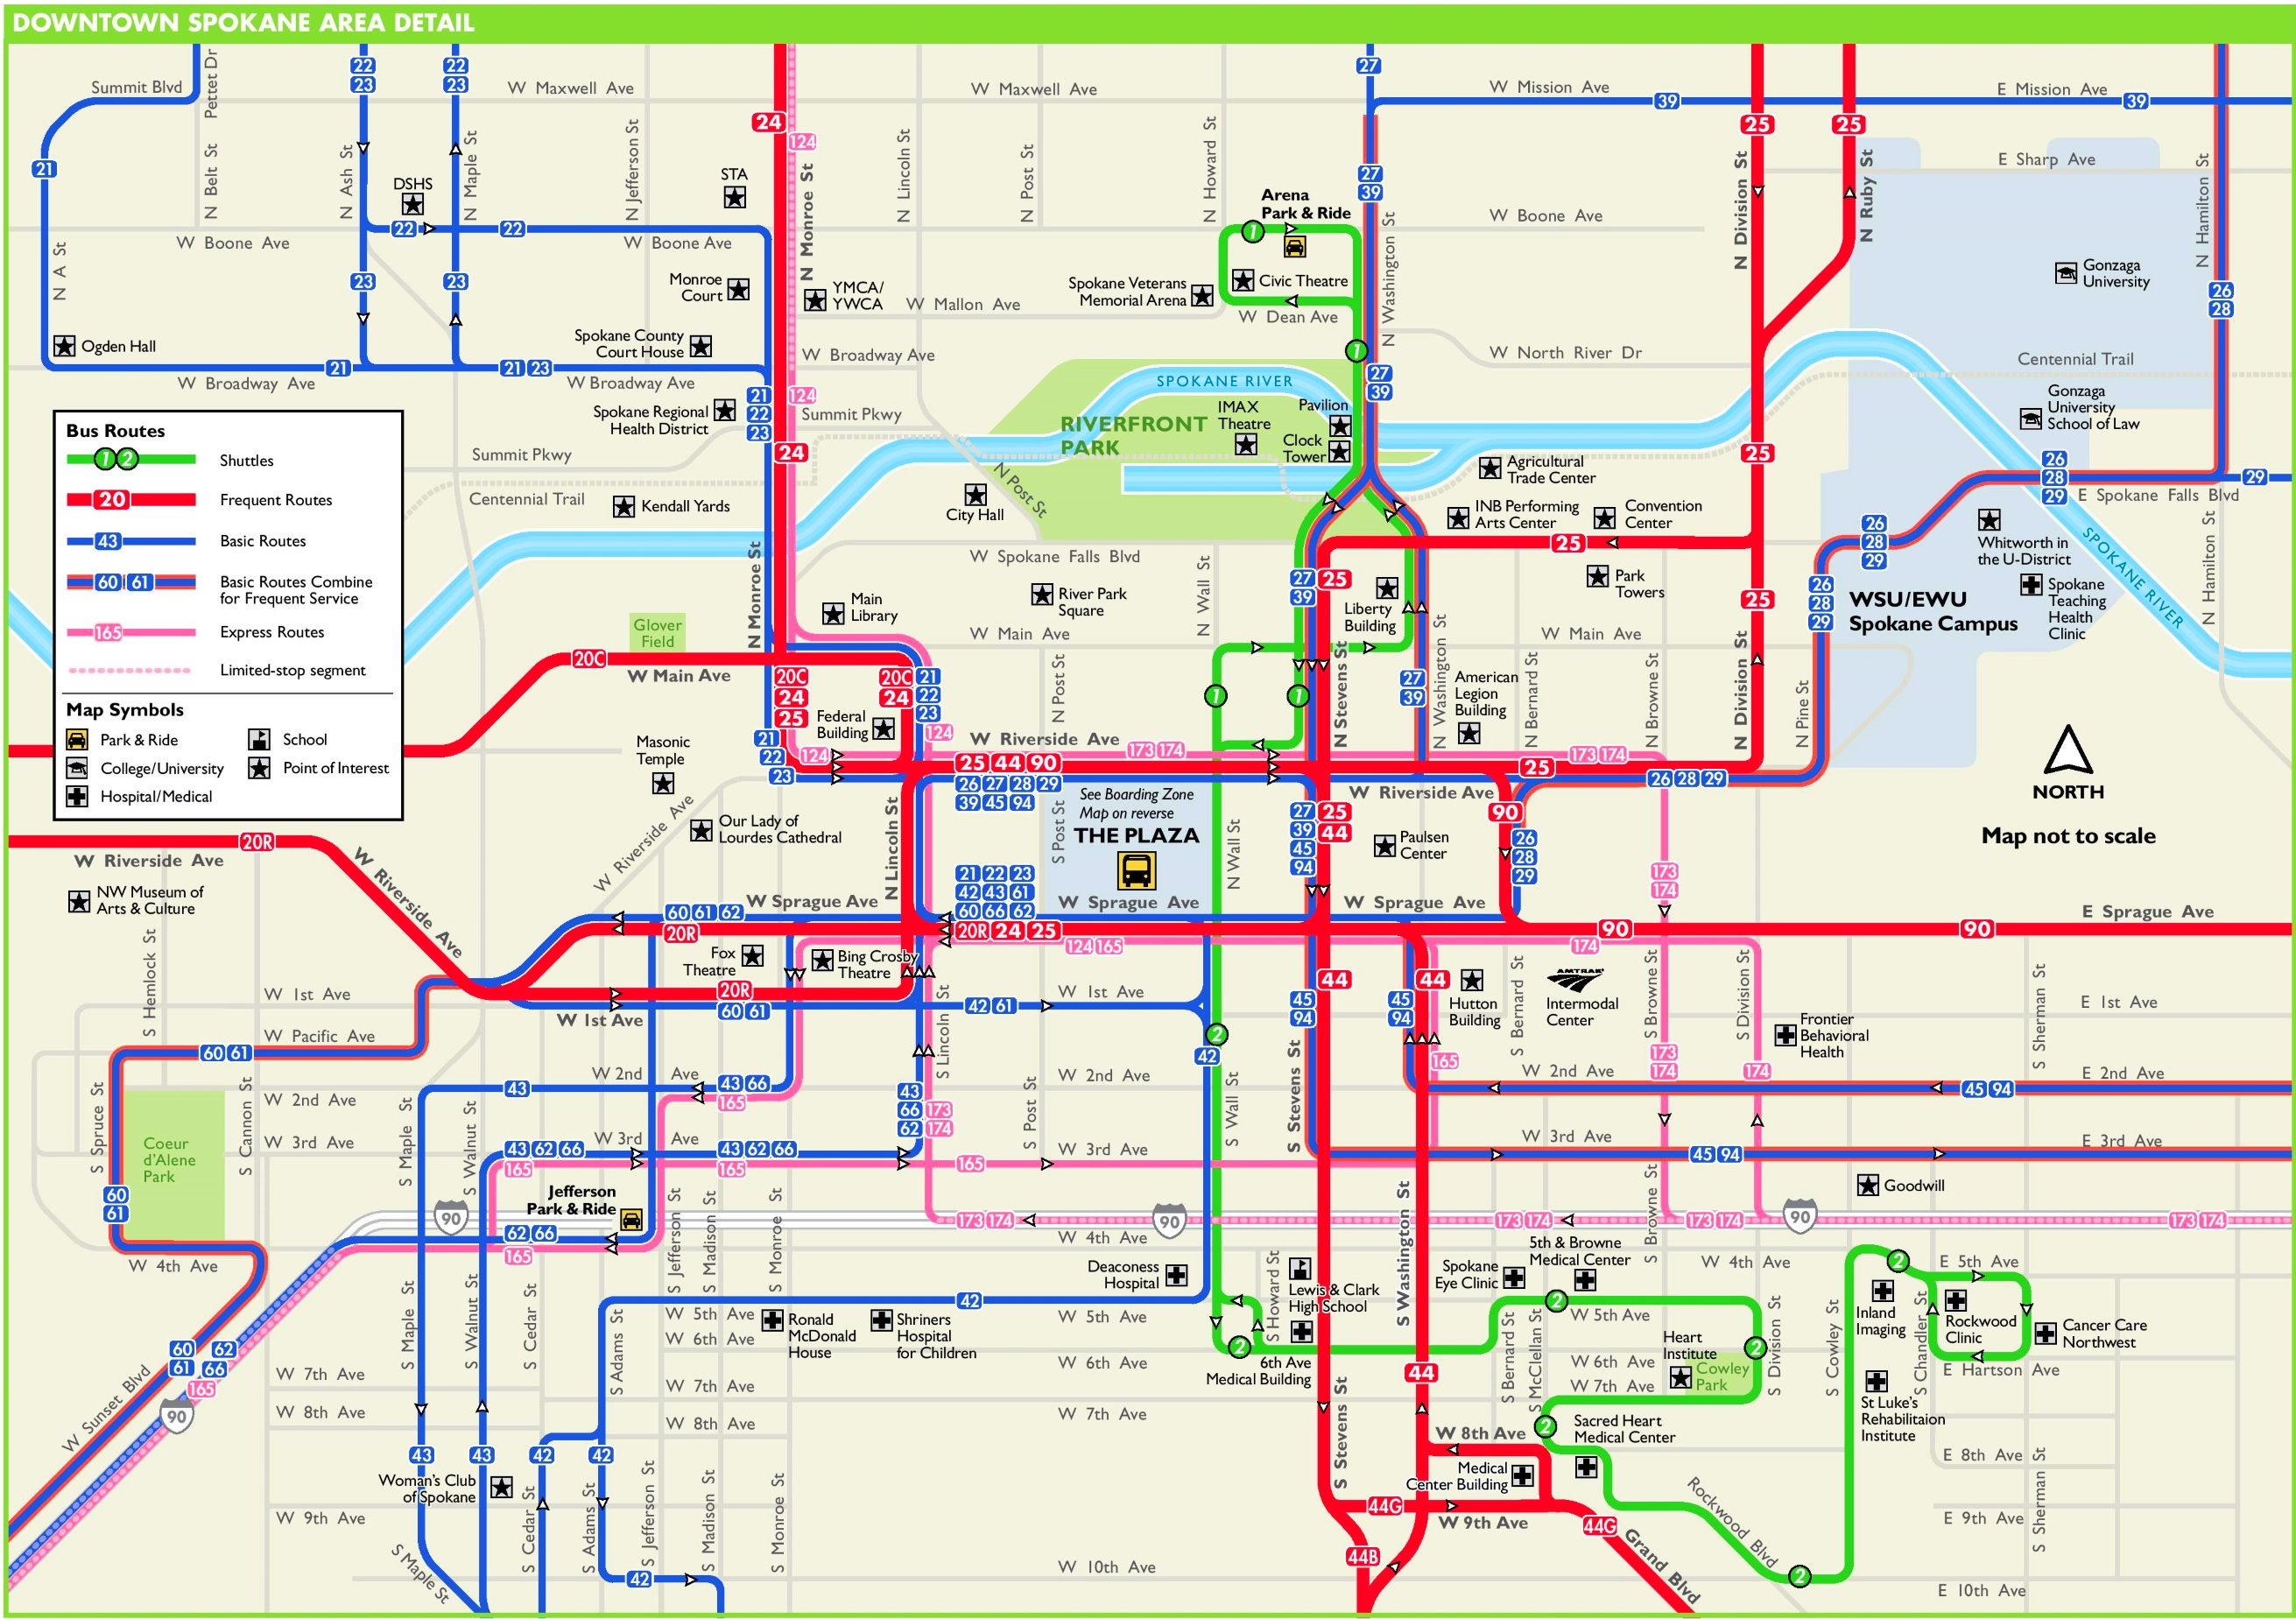 Spokane downtown transport map